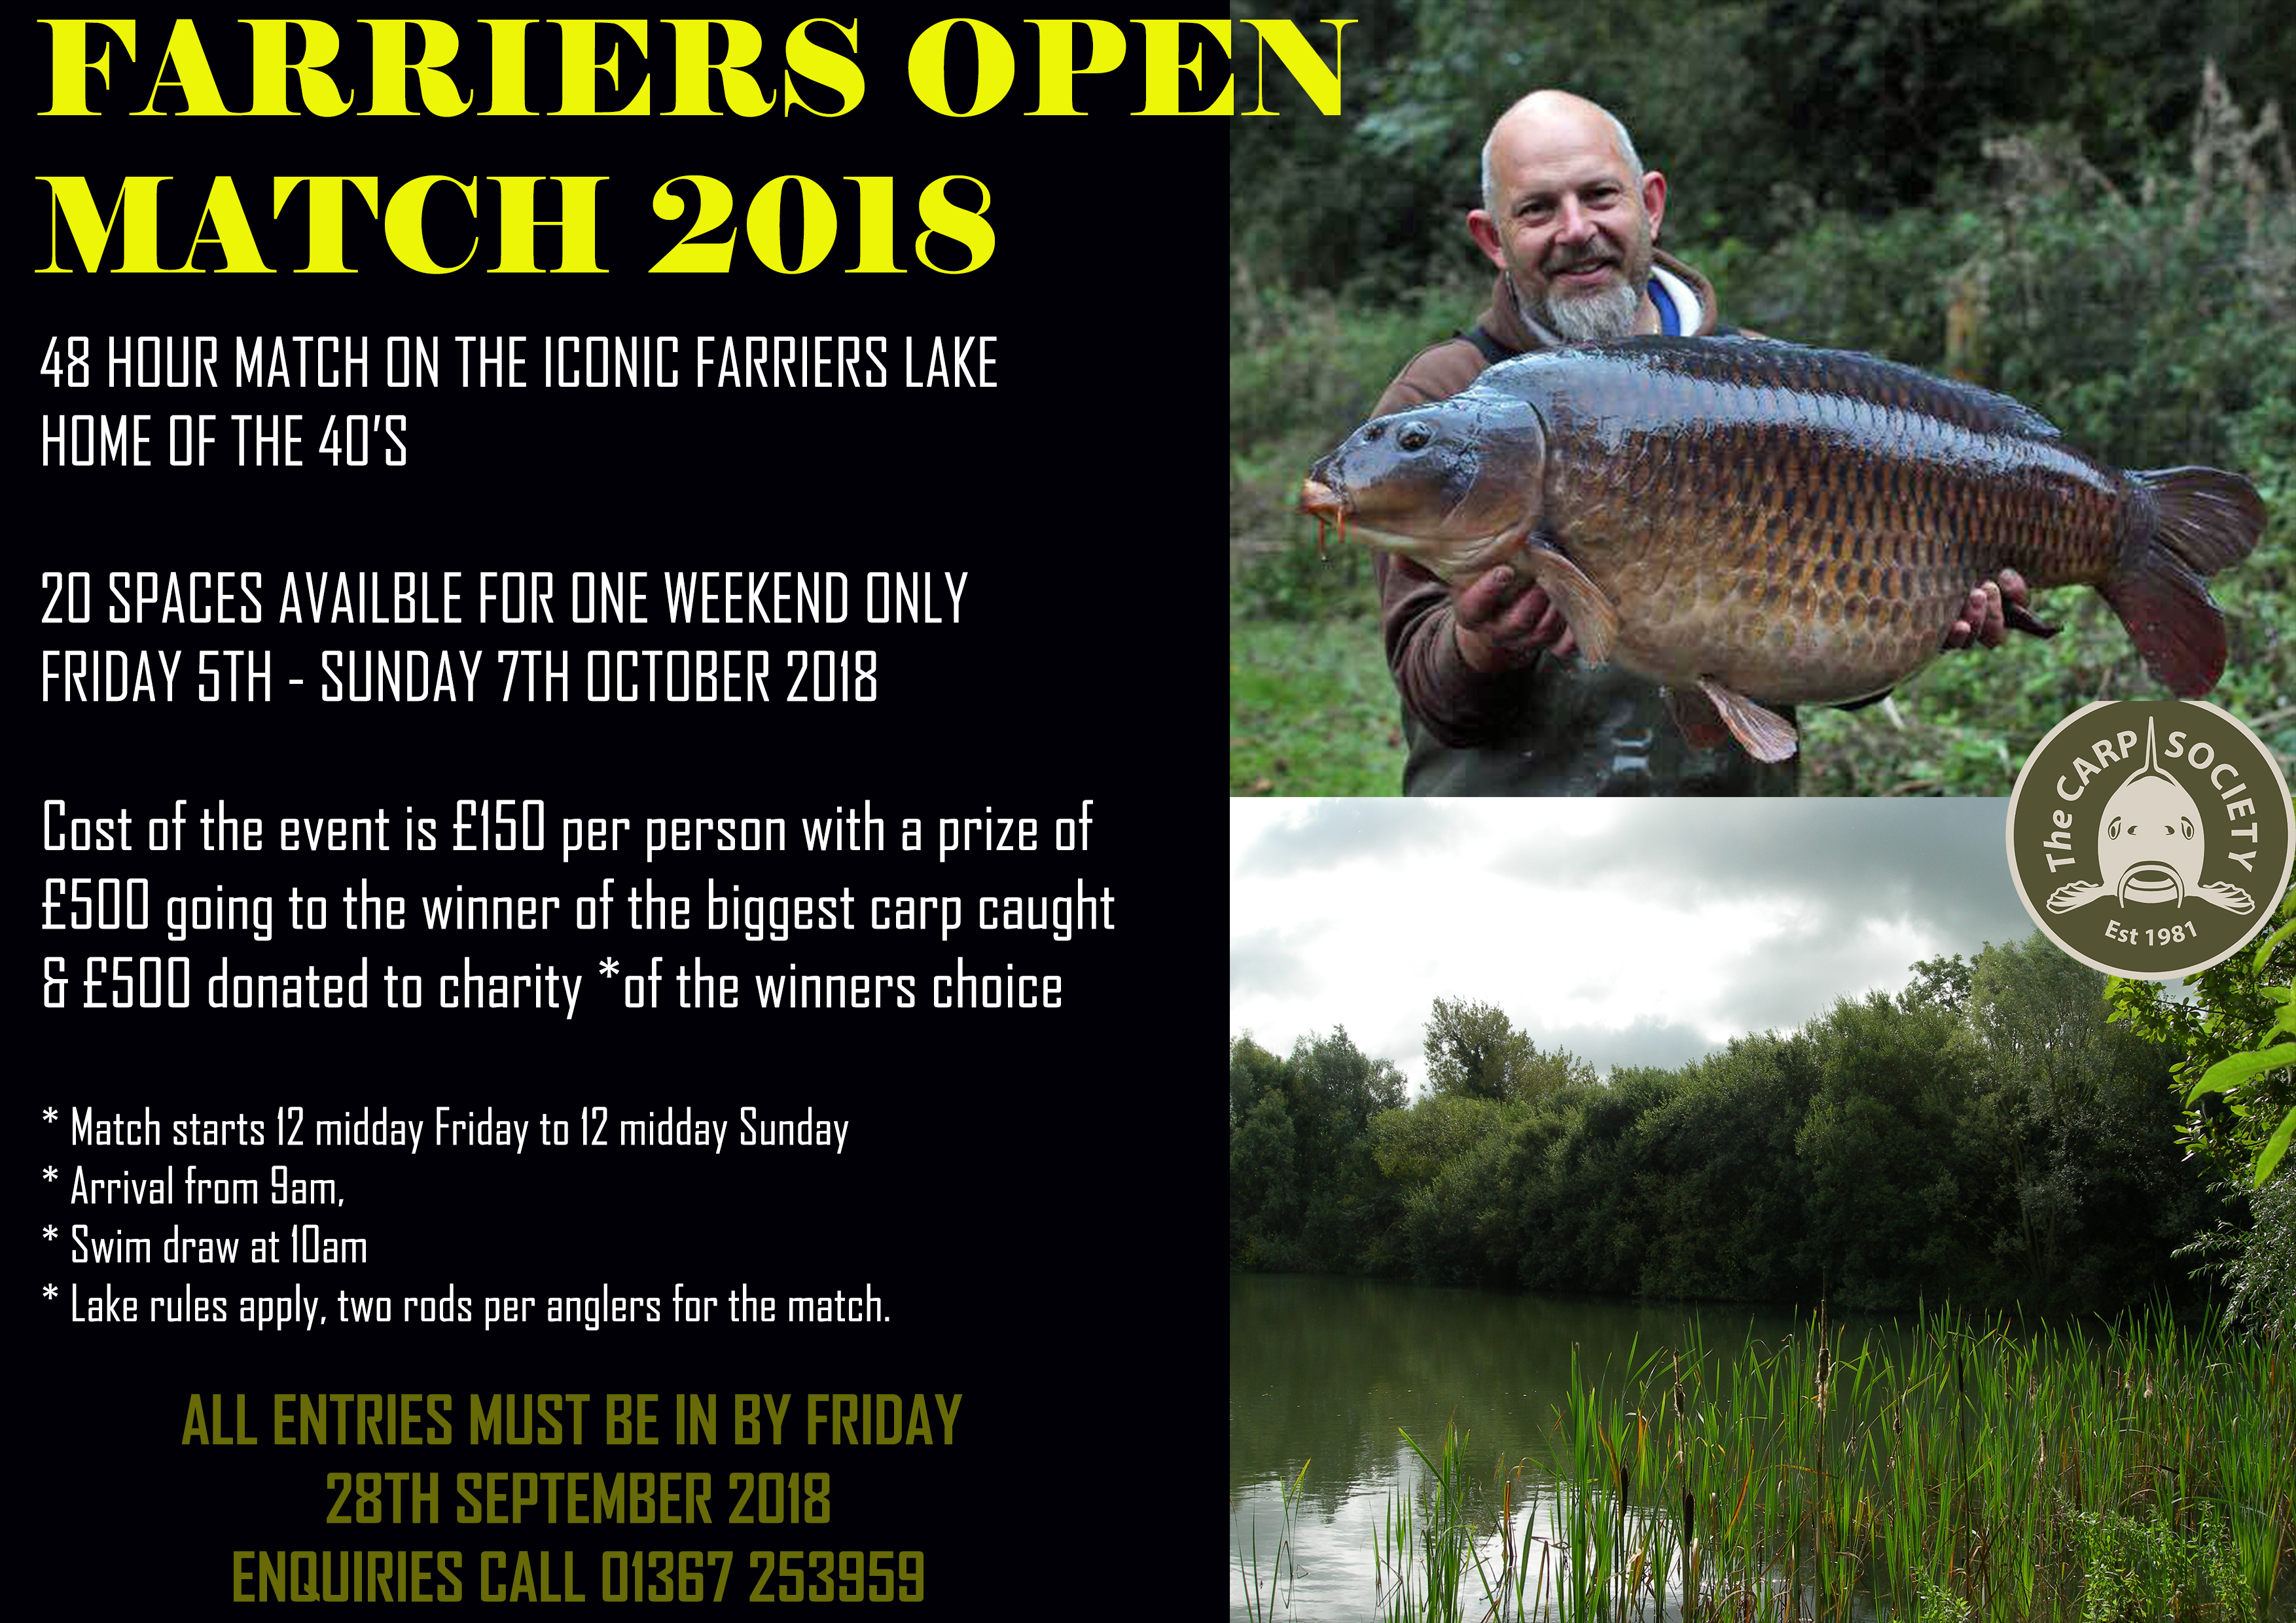 48 HOUR MATCH ON FARRIERS LAKE